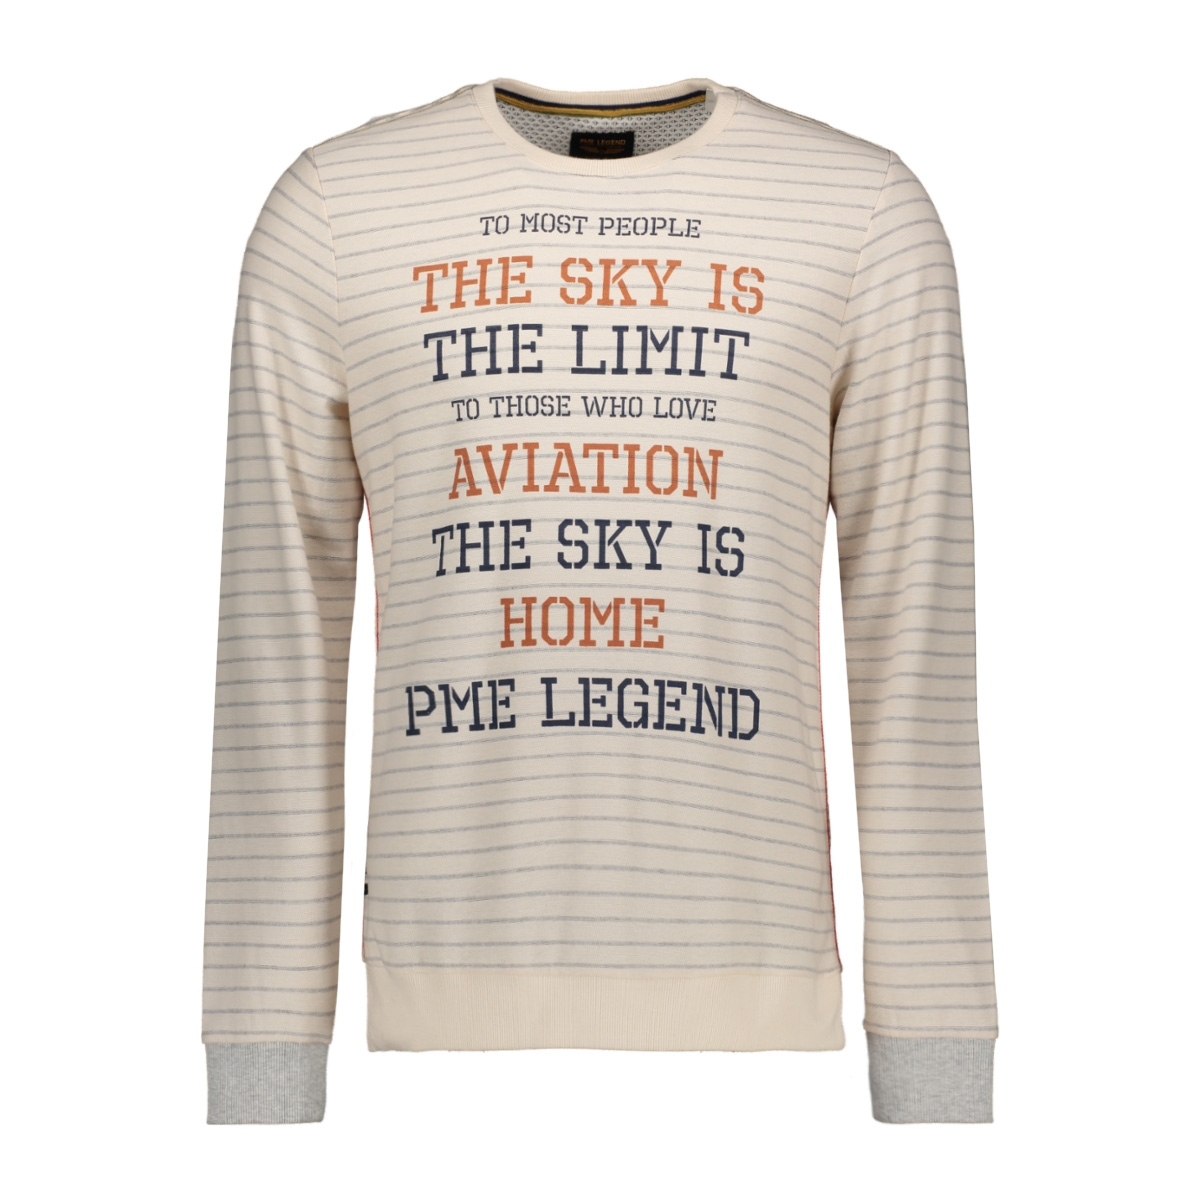 yarn dyed striped jersey pts202509 pme legend t-shirt 7013